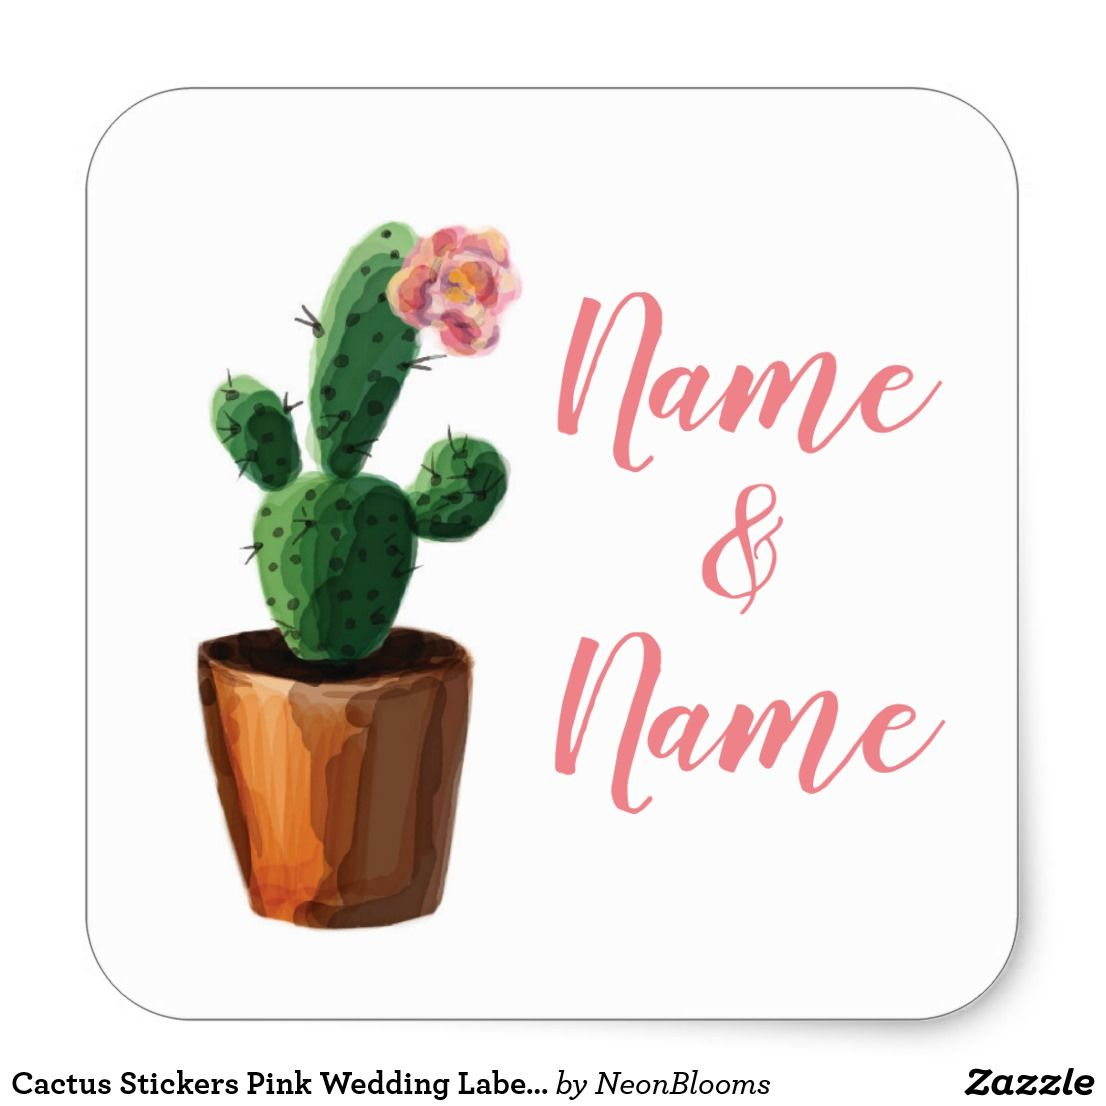 Cactus Stickers Pink Wedding Labels Cacti Pretty | Pinterest ...